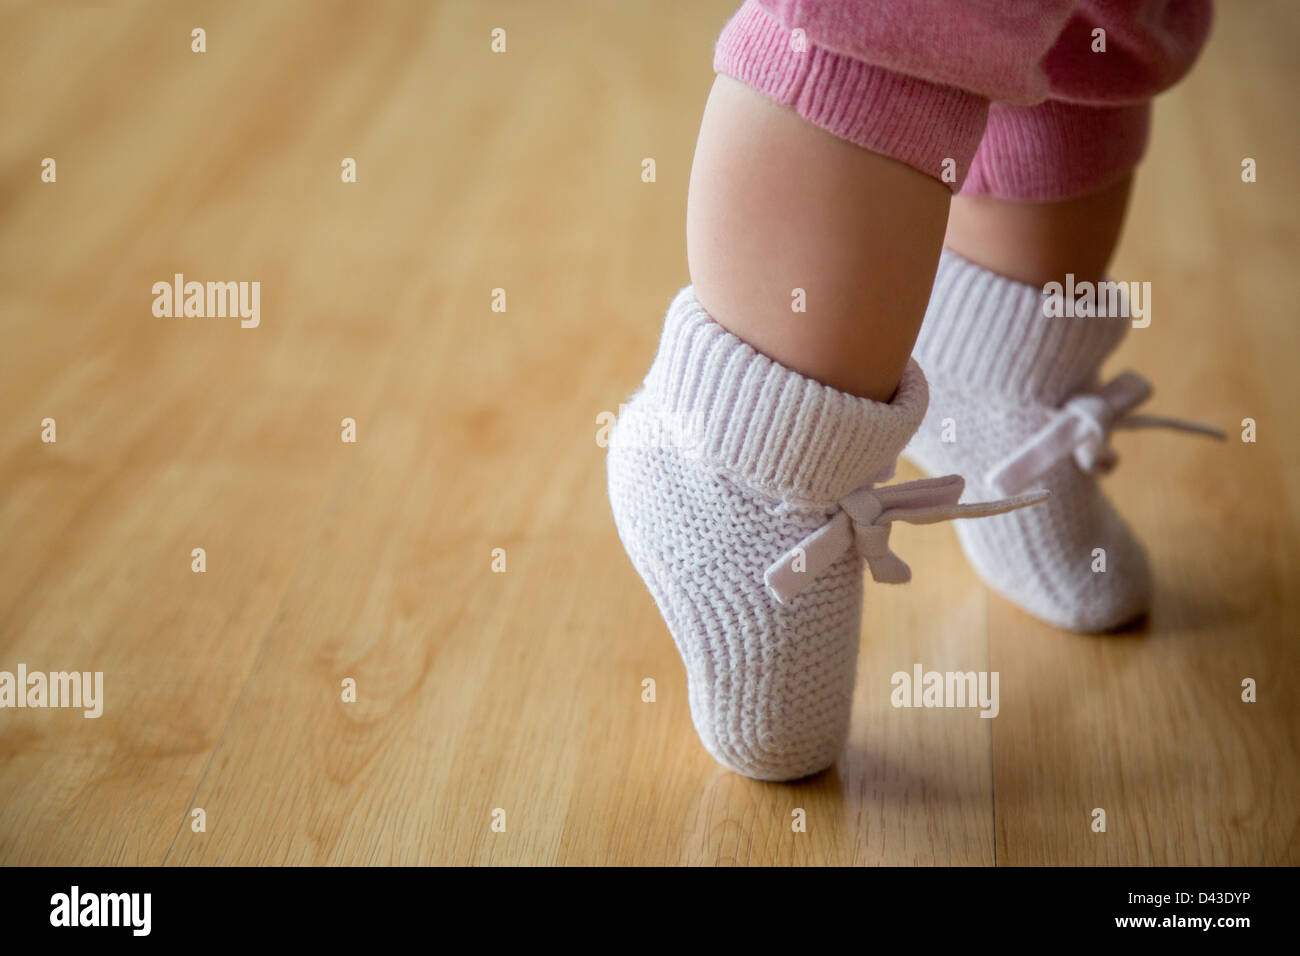 Baby Girl in pink booties Photo Stock